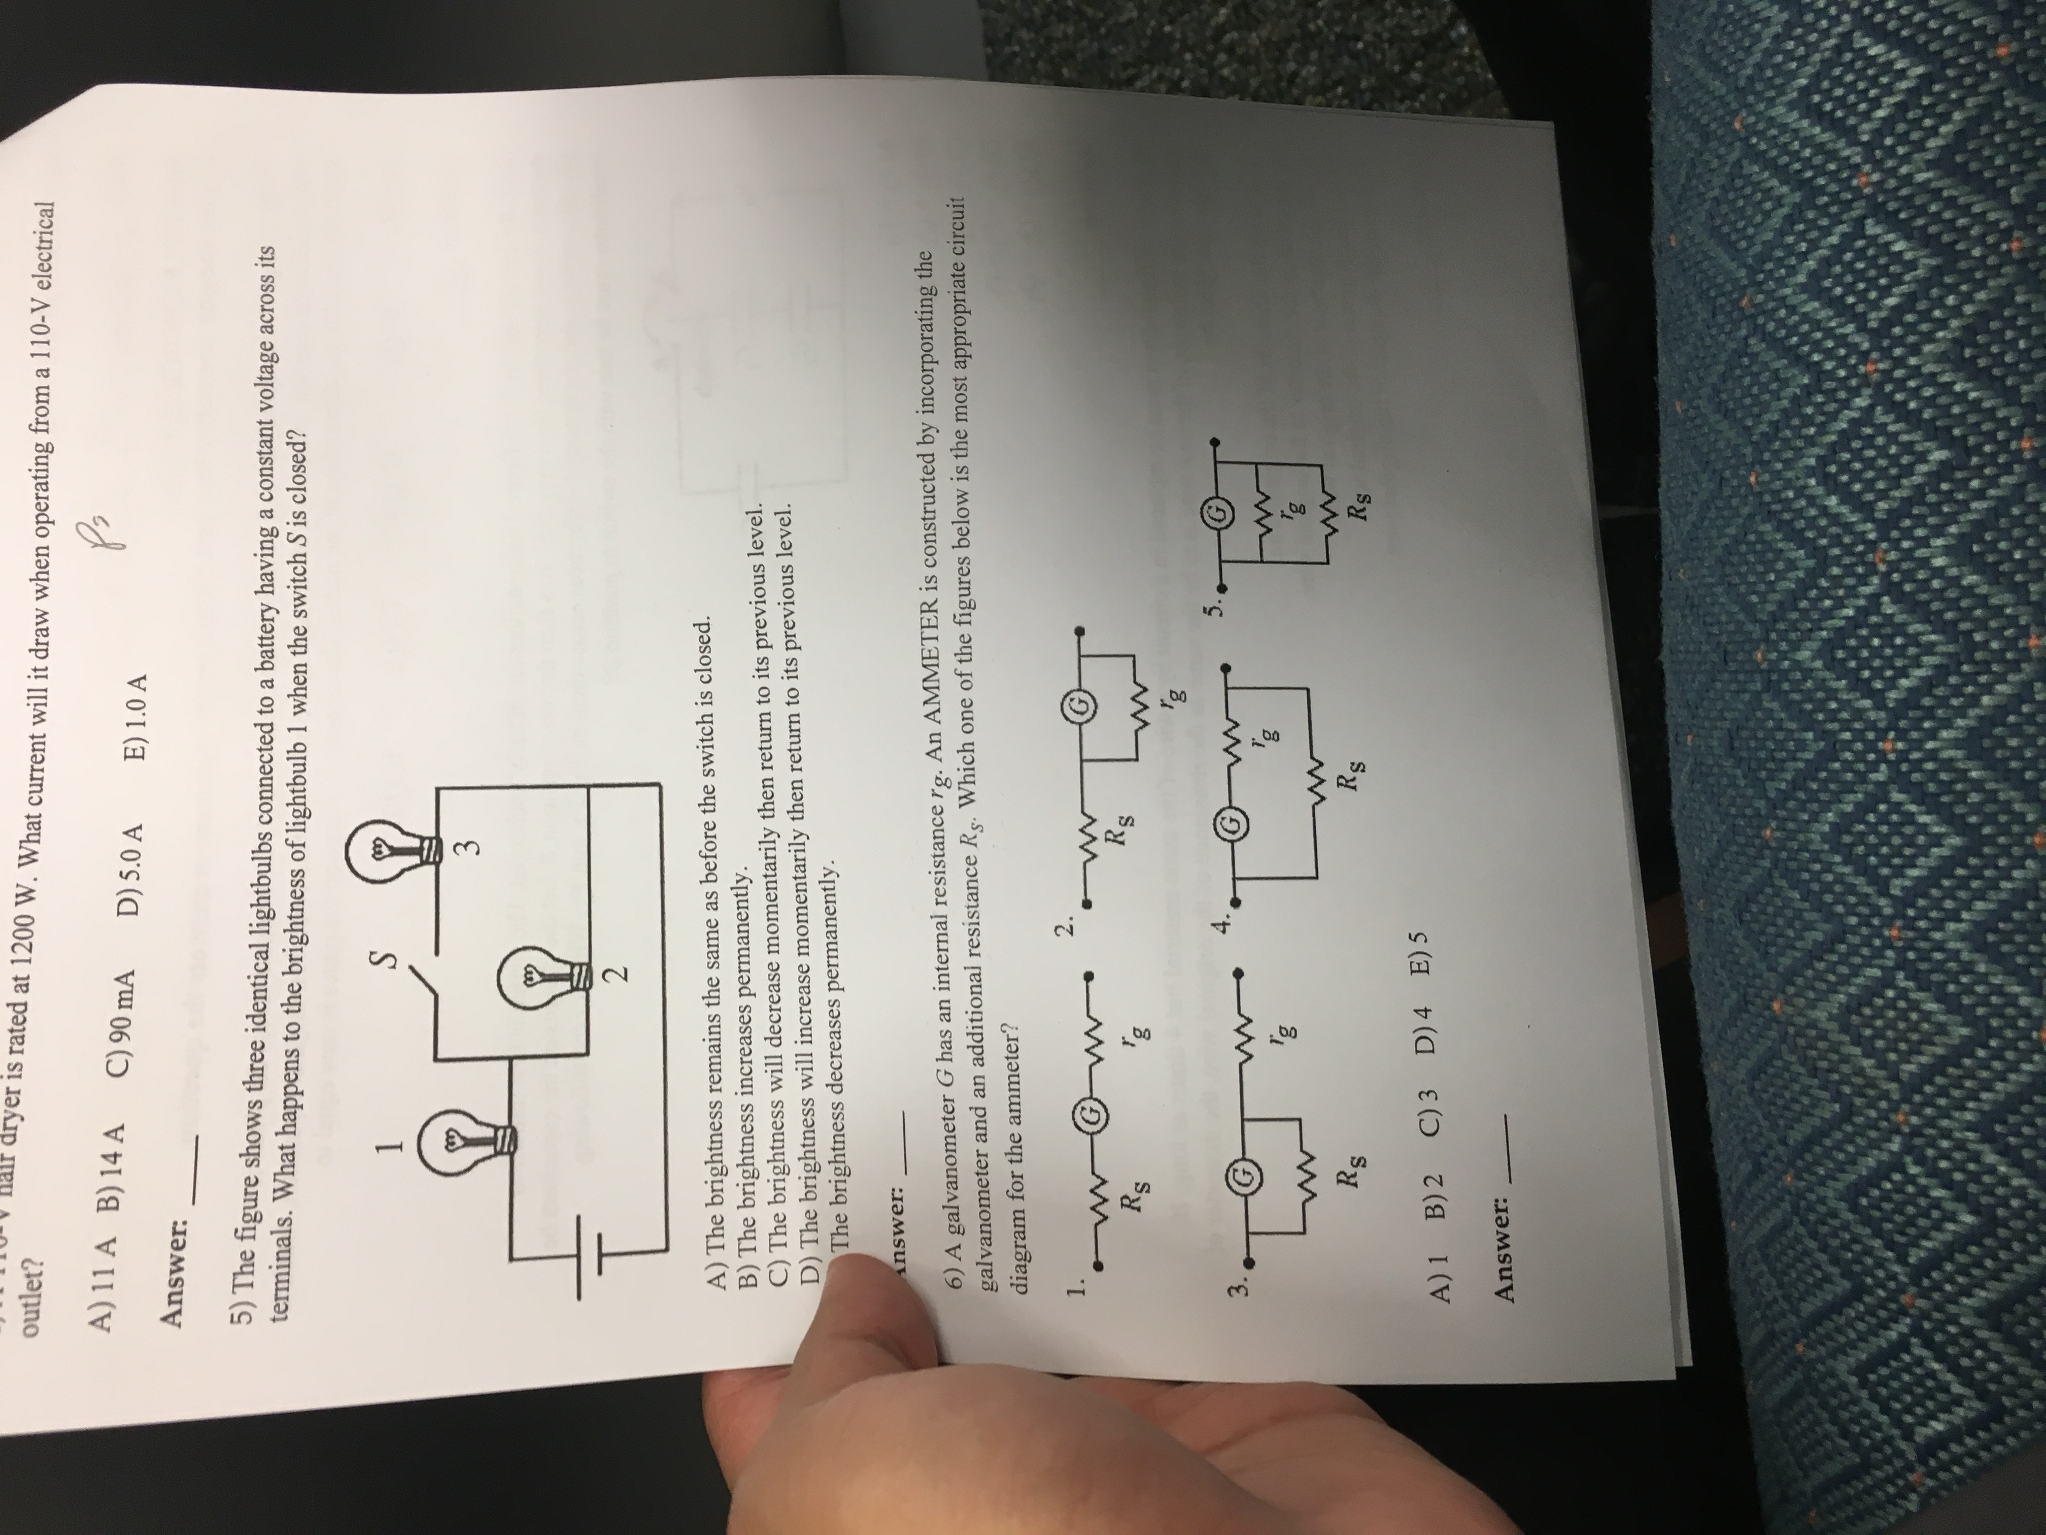 Solved: The Figure Shows Three Identical Lightbulbs Connec ...